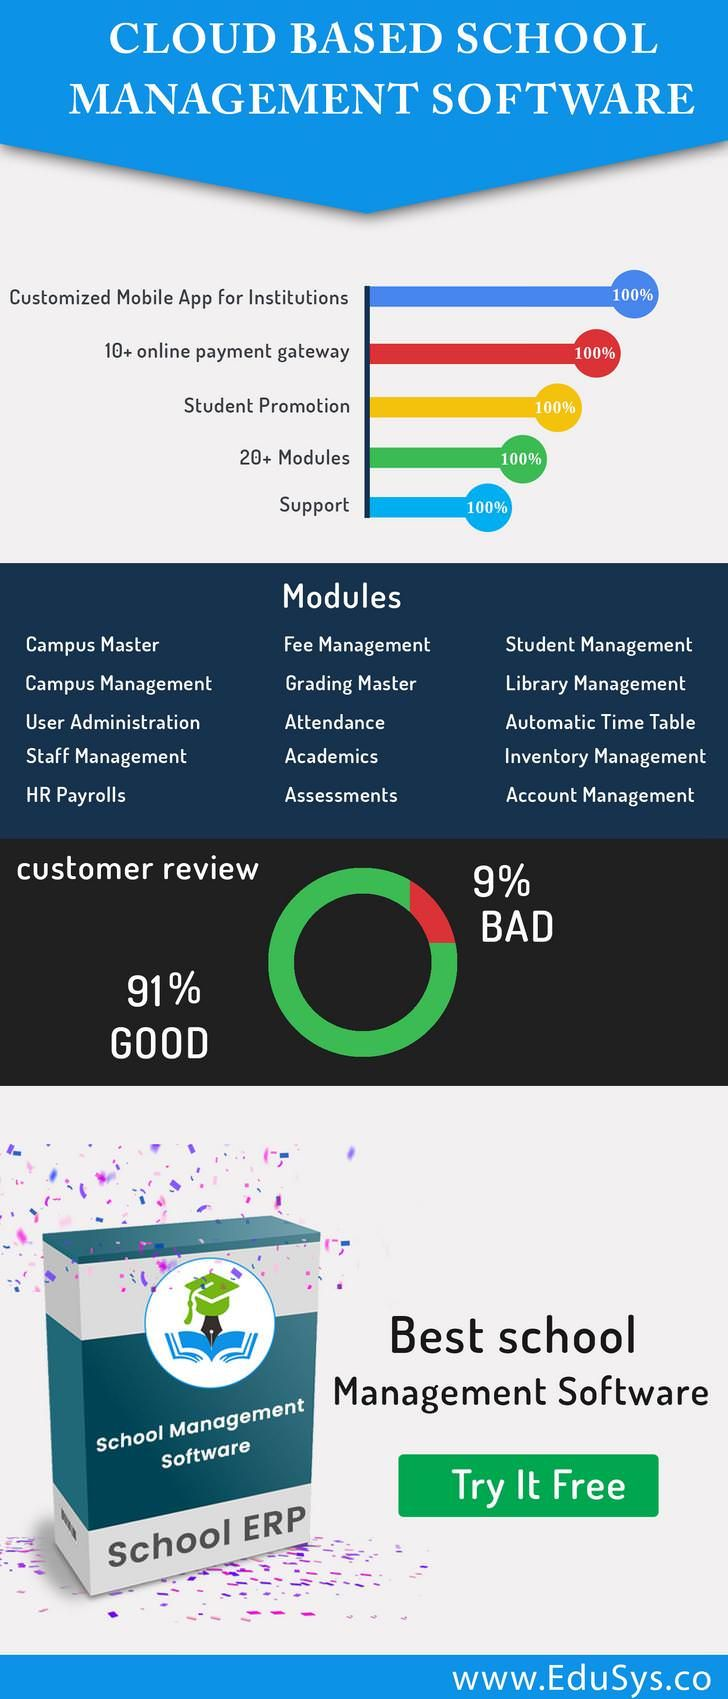 Pin by Meetusharma on School Management Software